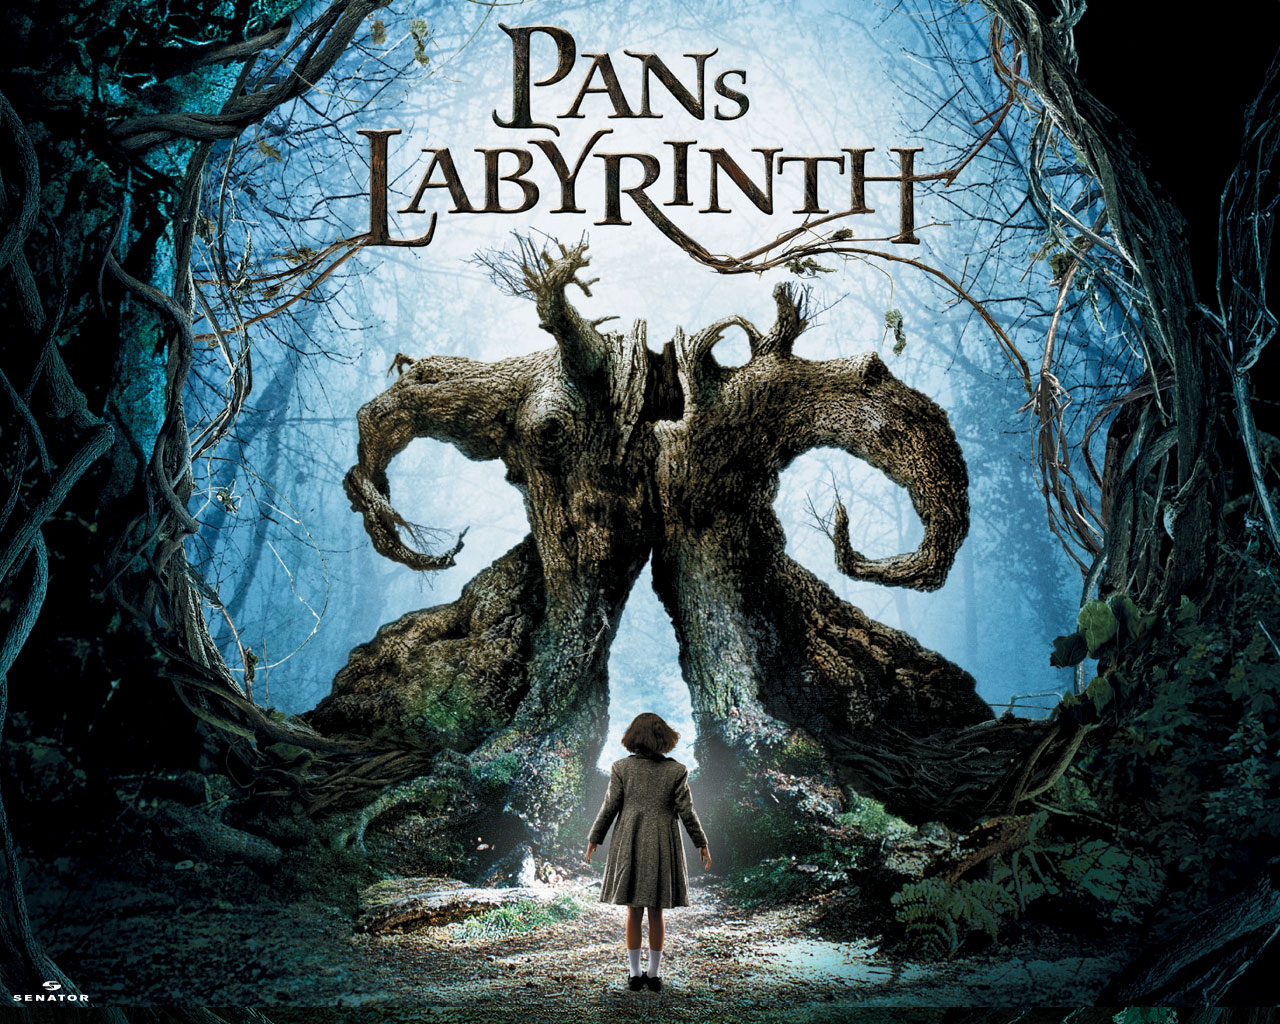 wallpaper_pans_labyrinth_1280x1024.jpg